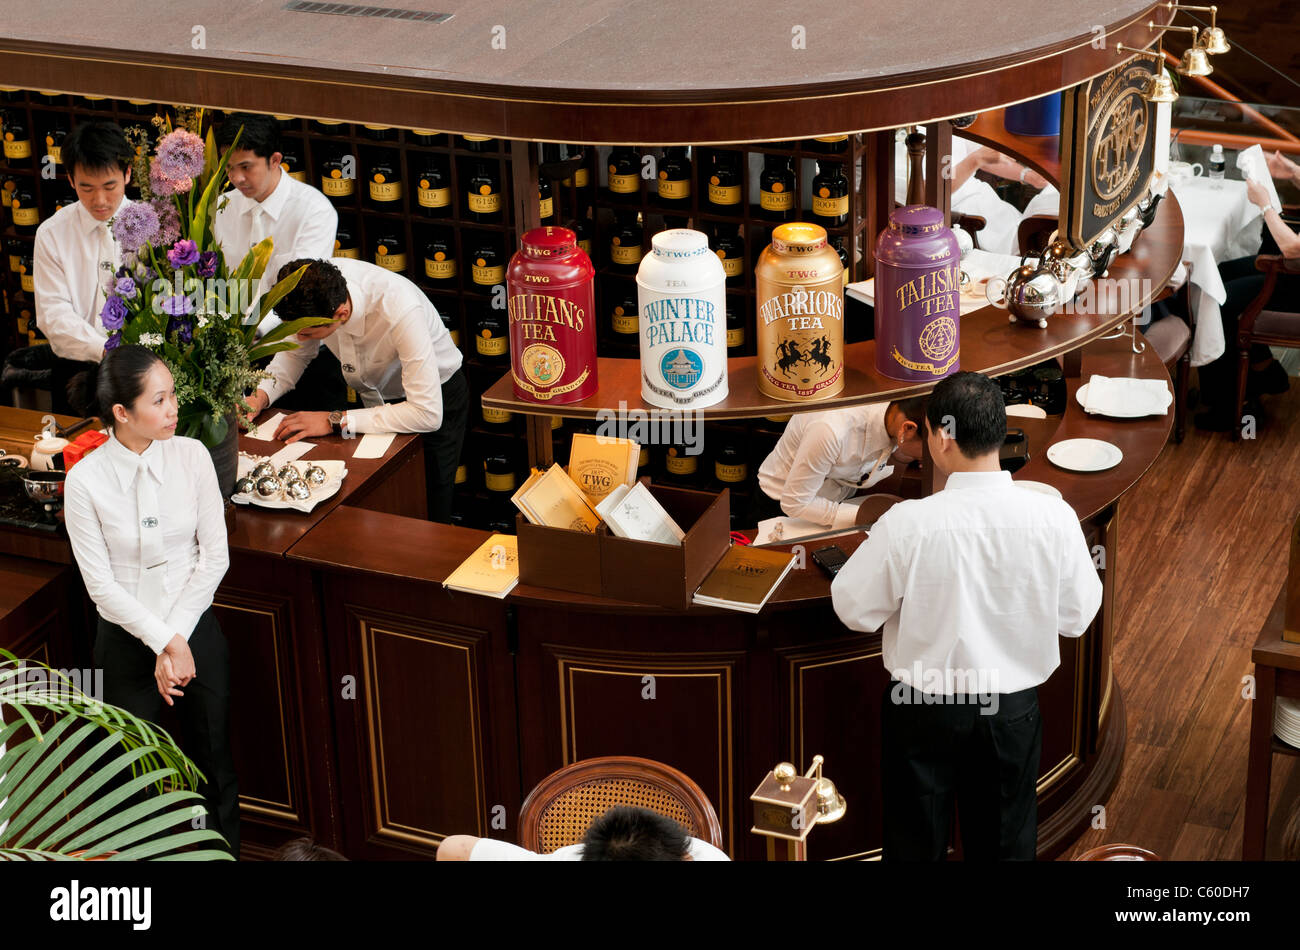 Waiting Staff At Twg Tea Salon Boutique Cafe Restaurant The Stock